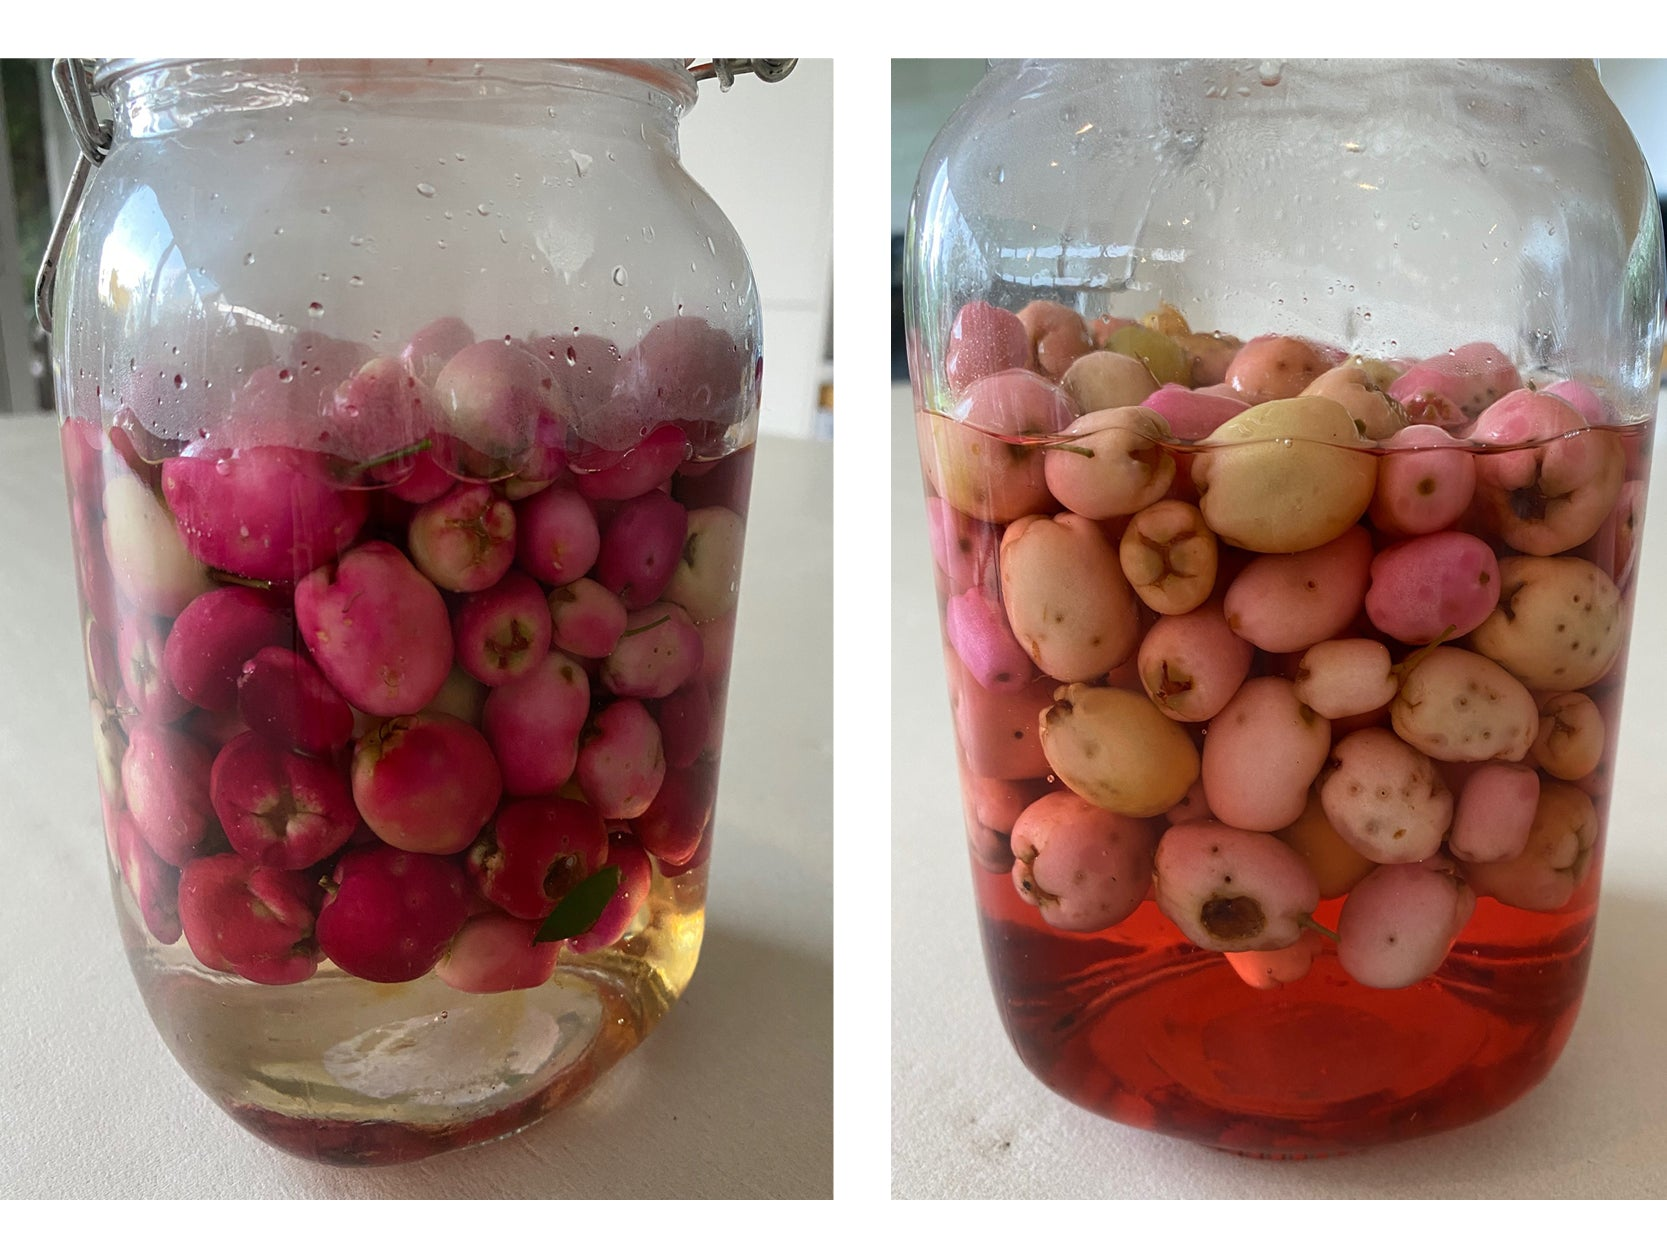 Lilly Pilly infused gin